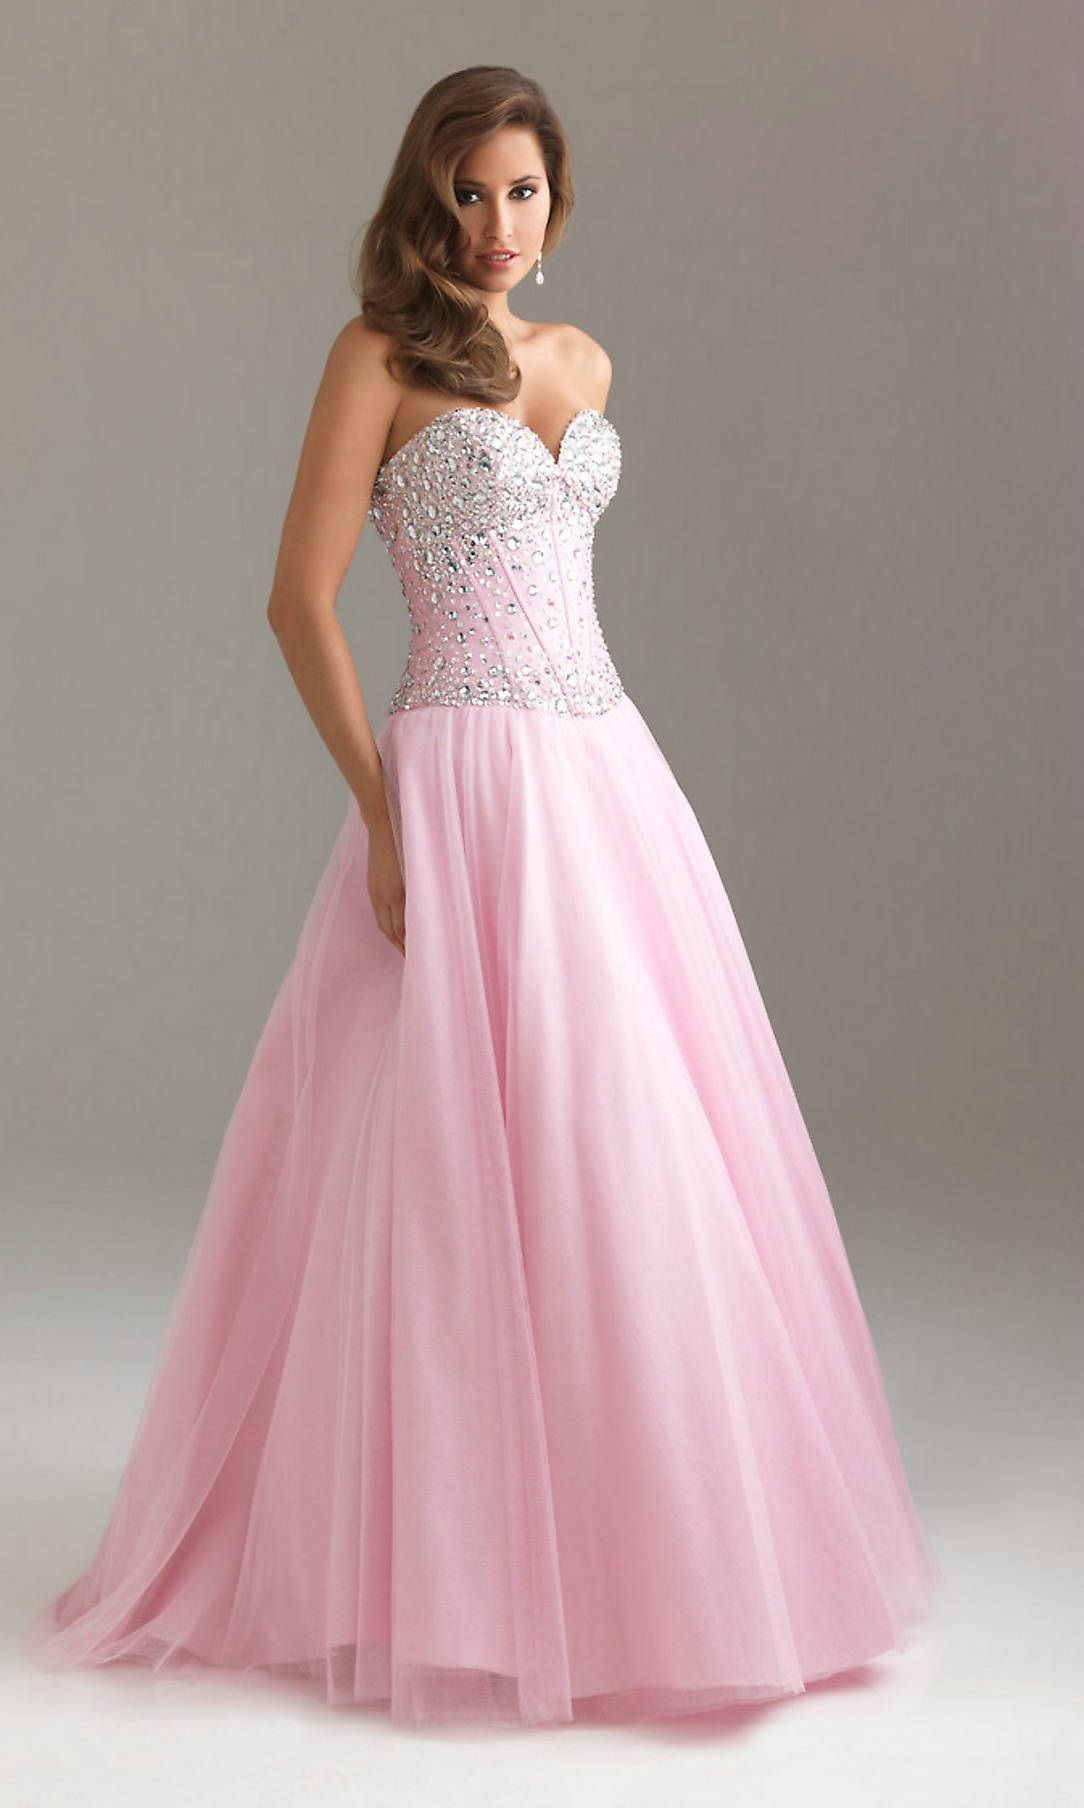 This is the perfect dress I hope I can find one like it! | Prom ...